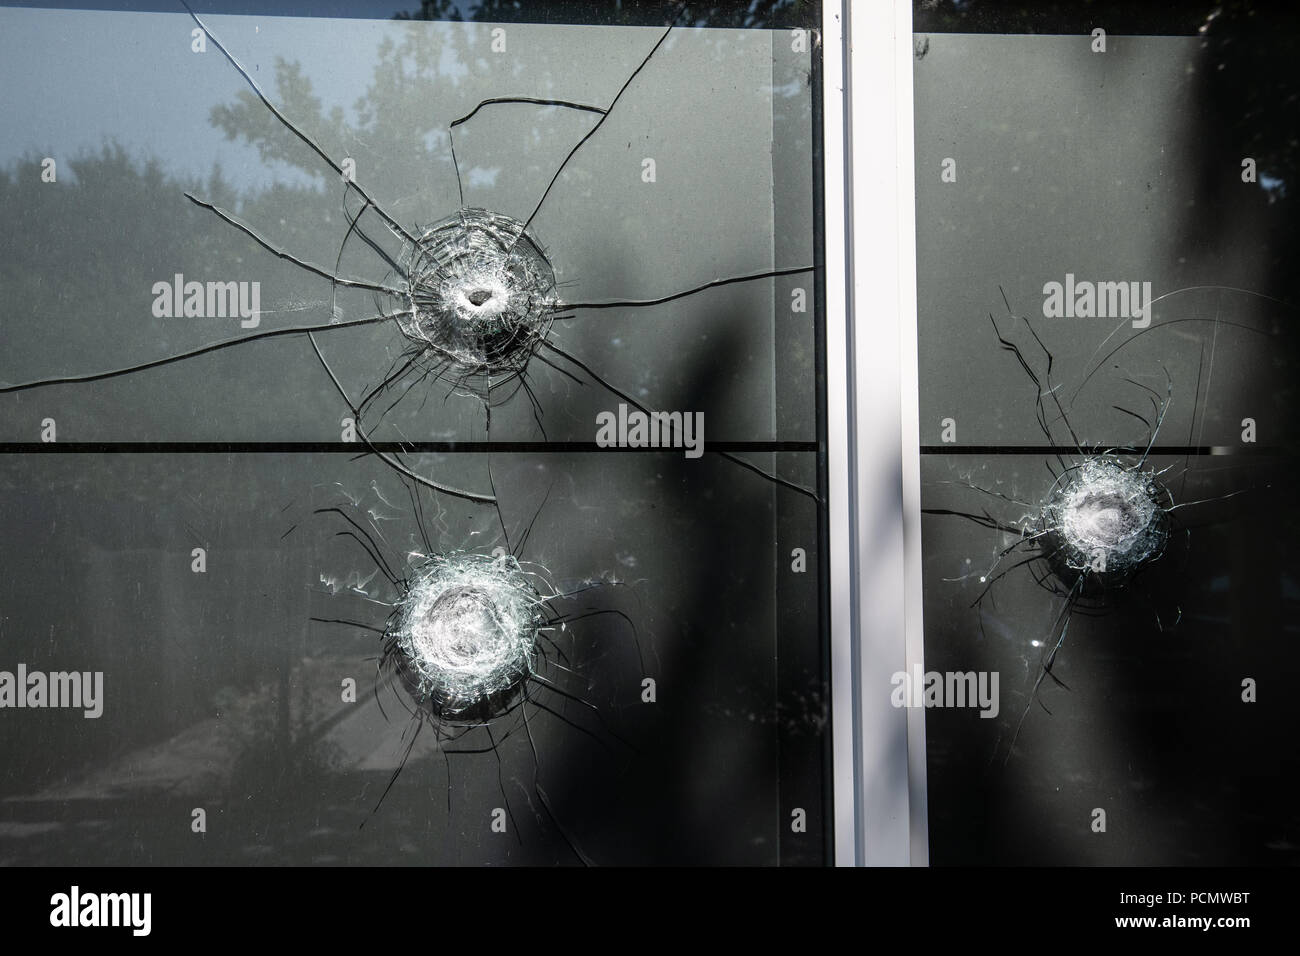 03 August 2018, Germany, Berlin: Bullet holes can be seen in the windows of the 'Chechen Cultural Centre' on Eichhorster Weg in the Maerkisches Viertel. There was a shooting the night before for as yet unknown reasons. Two men were seriously injured. Two suspects have been arrested. Photo: Paul Zinken/dpa - Stock Image